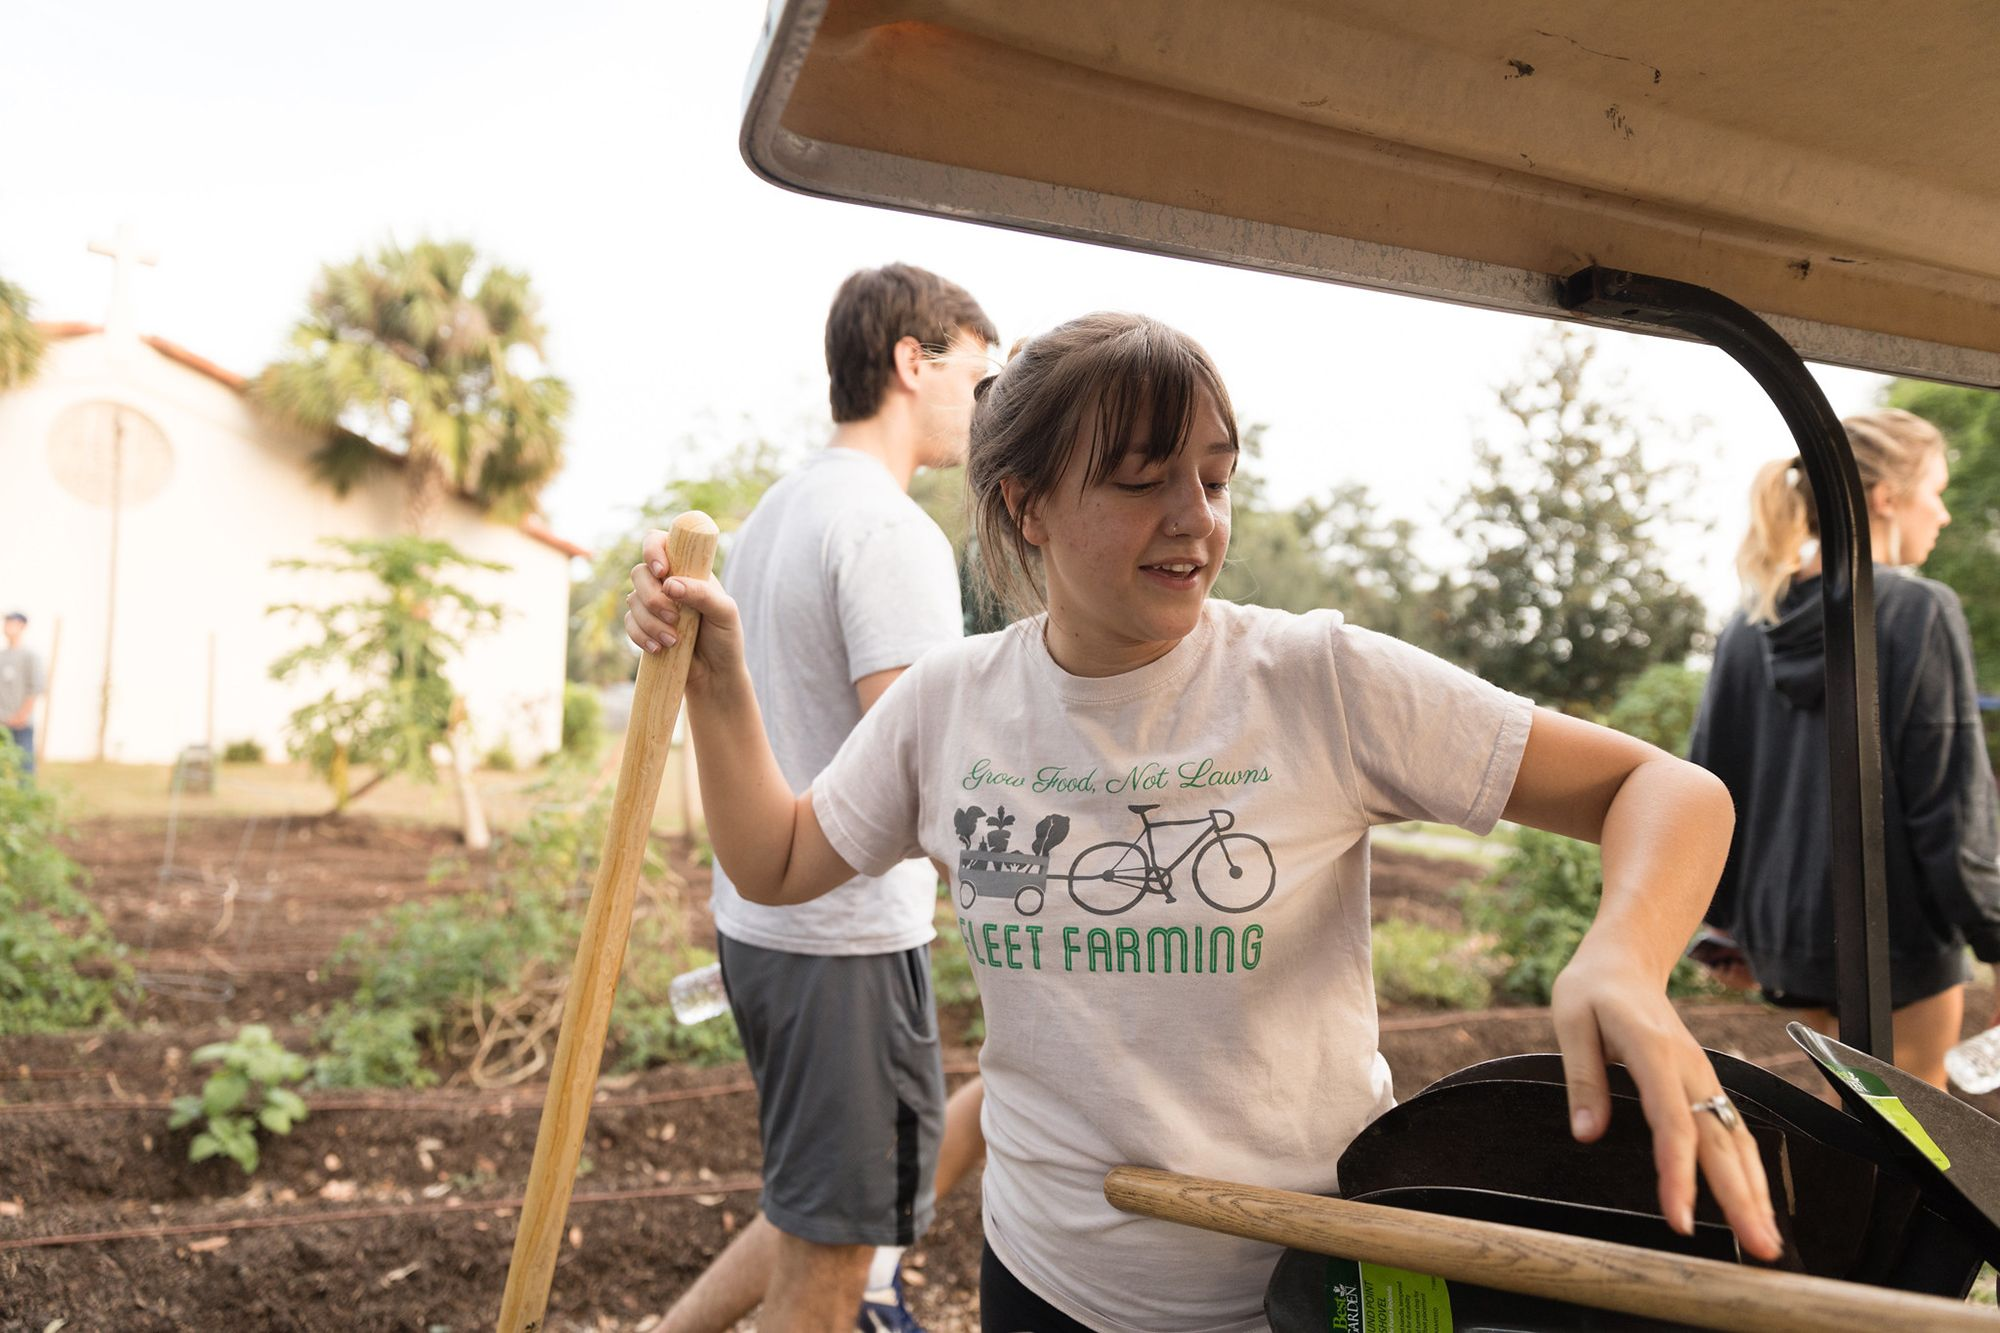 One of the Fleet Farming staff members grabbing supplies off the cart for planting.